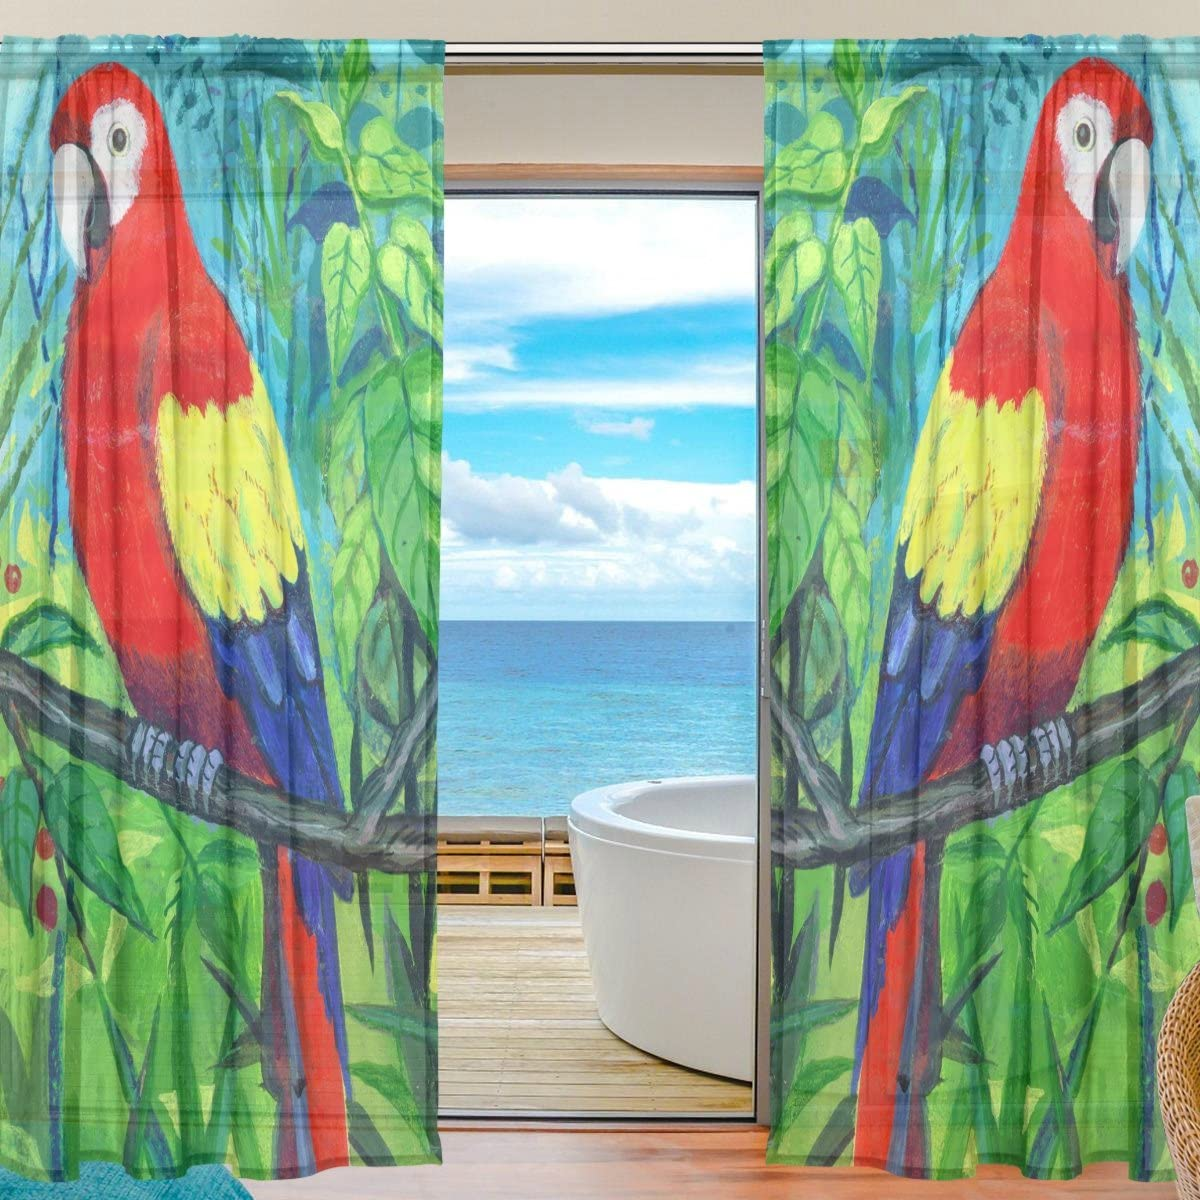 ALAZA Sheer Curtain Bird Parrot Art Painting Voile Tulle Window Curtain for Home Kitchen Bedroom Living Room 55x78 inches 2 panels